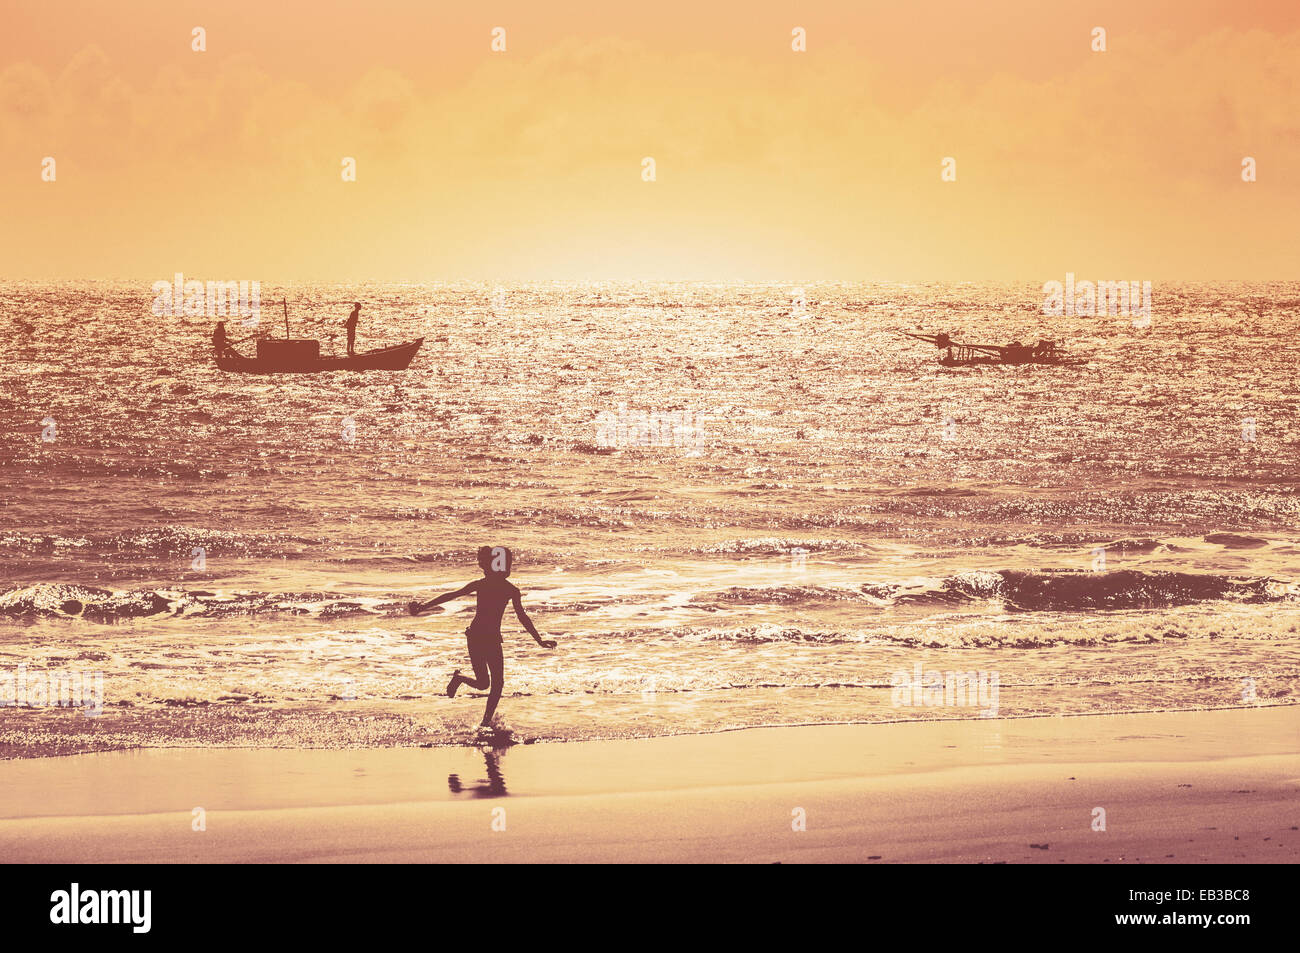 Brazil, Pirangi, Rio Grande do Norte, Girl running on beach during sunset - Stock Image